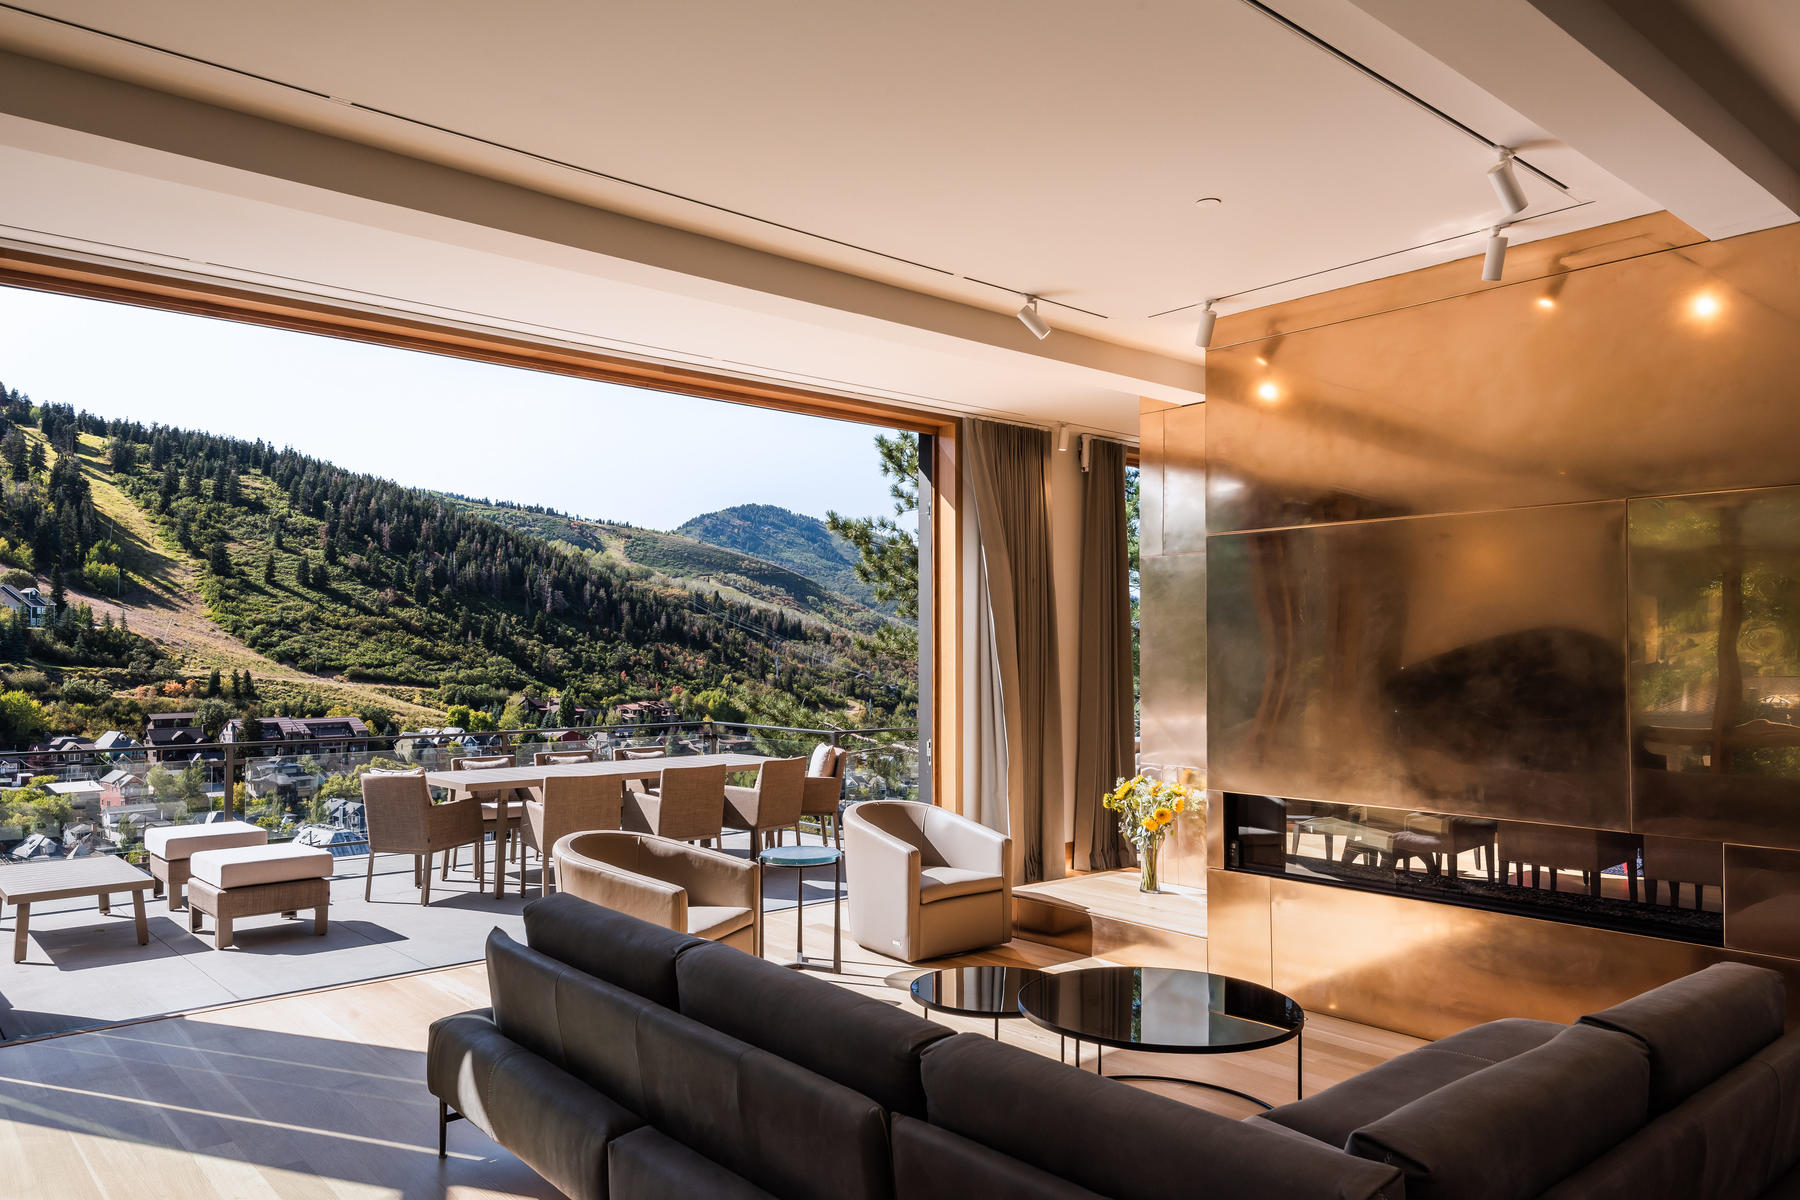 Single Family Homes for Active at The Jewel Of Old Town With Majestic Views 331 McHenry Ave Park City, Utah 84060 United States